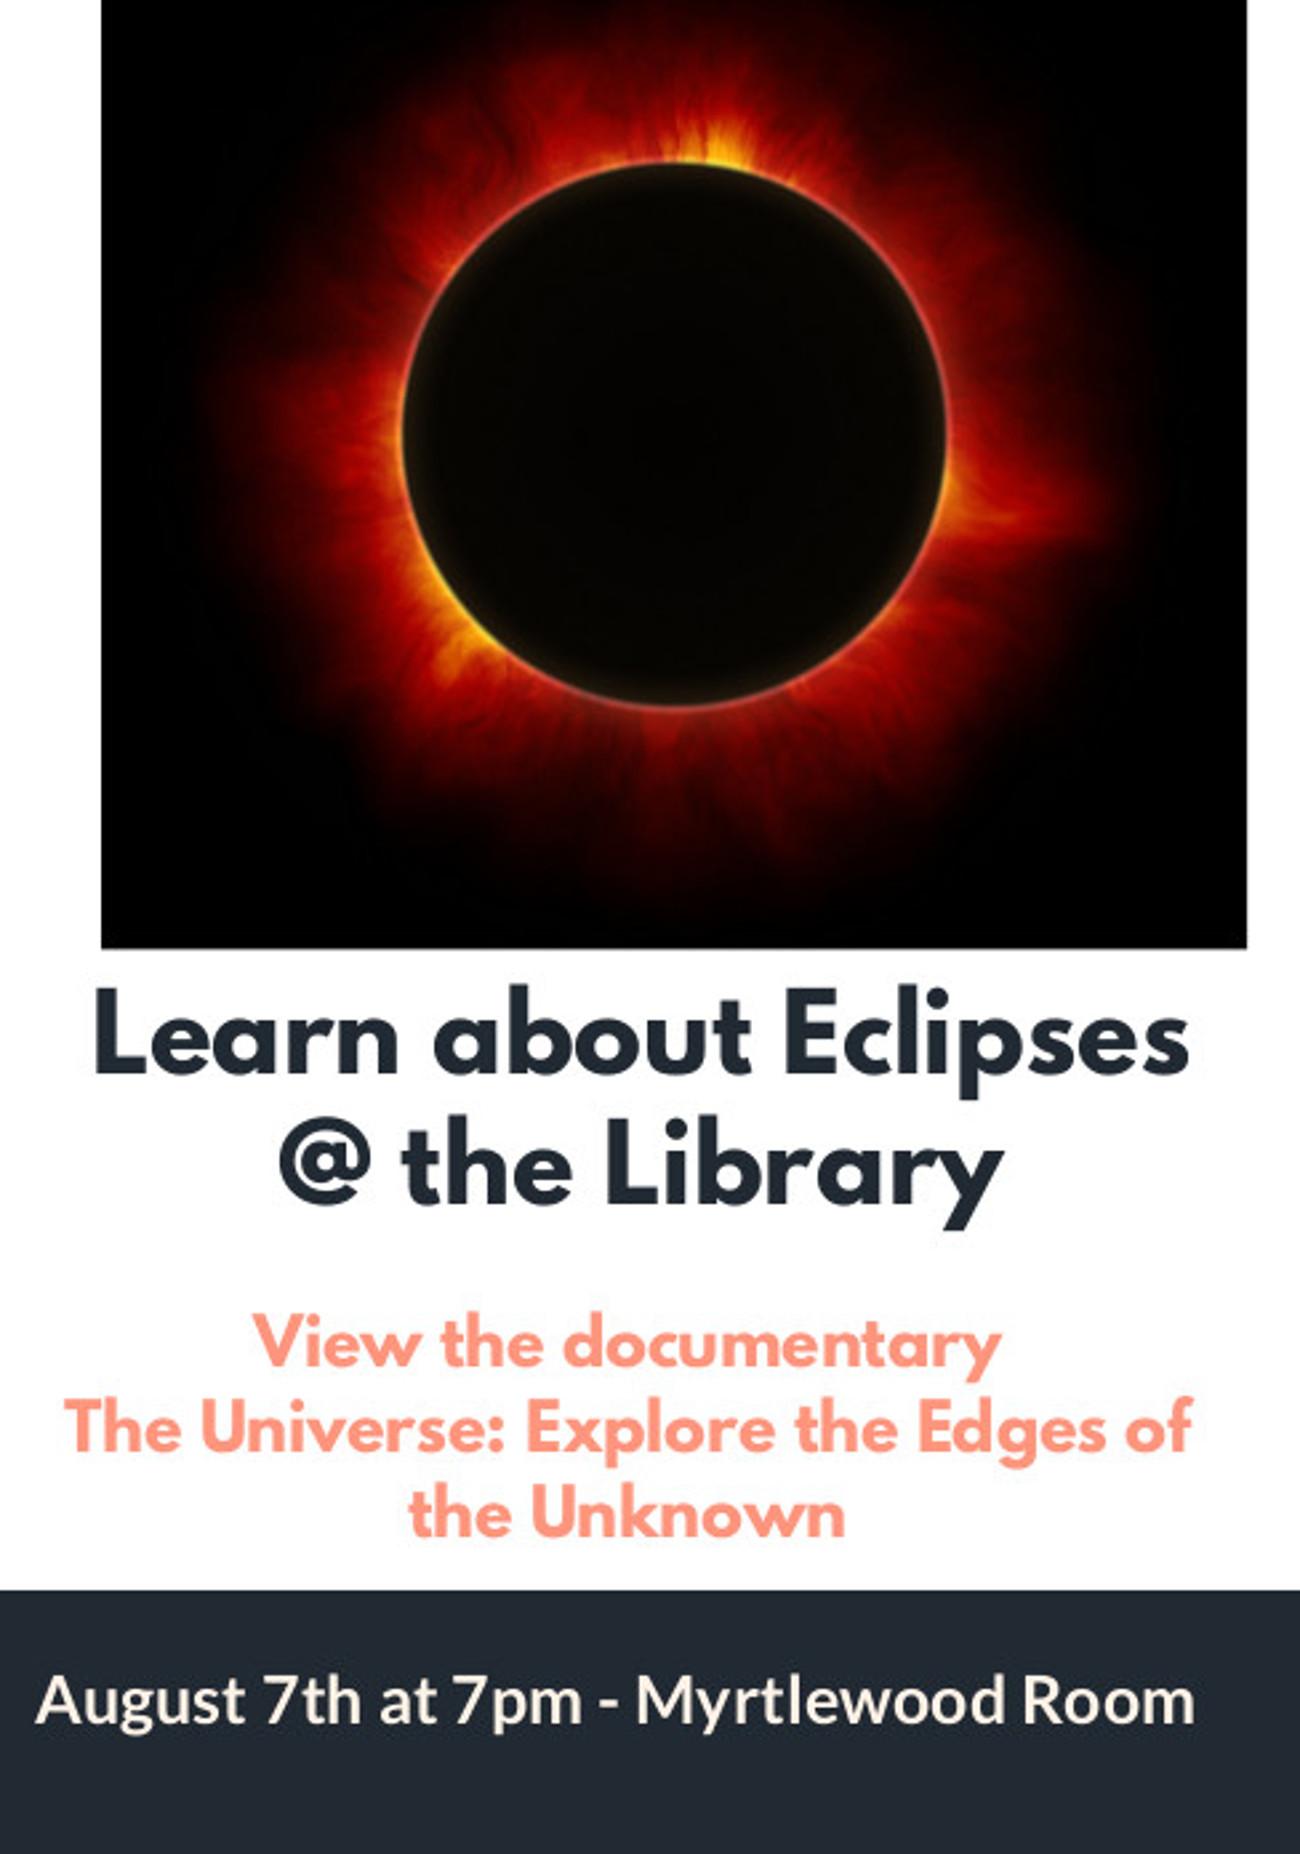 Eclipse episodes for viewing poster